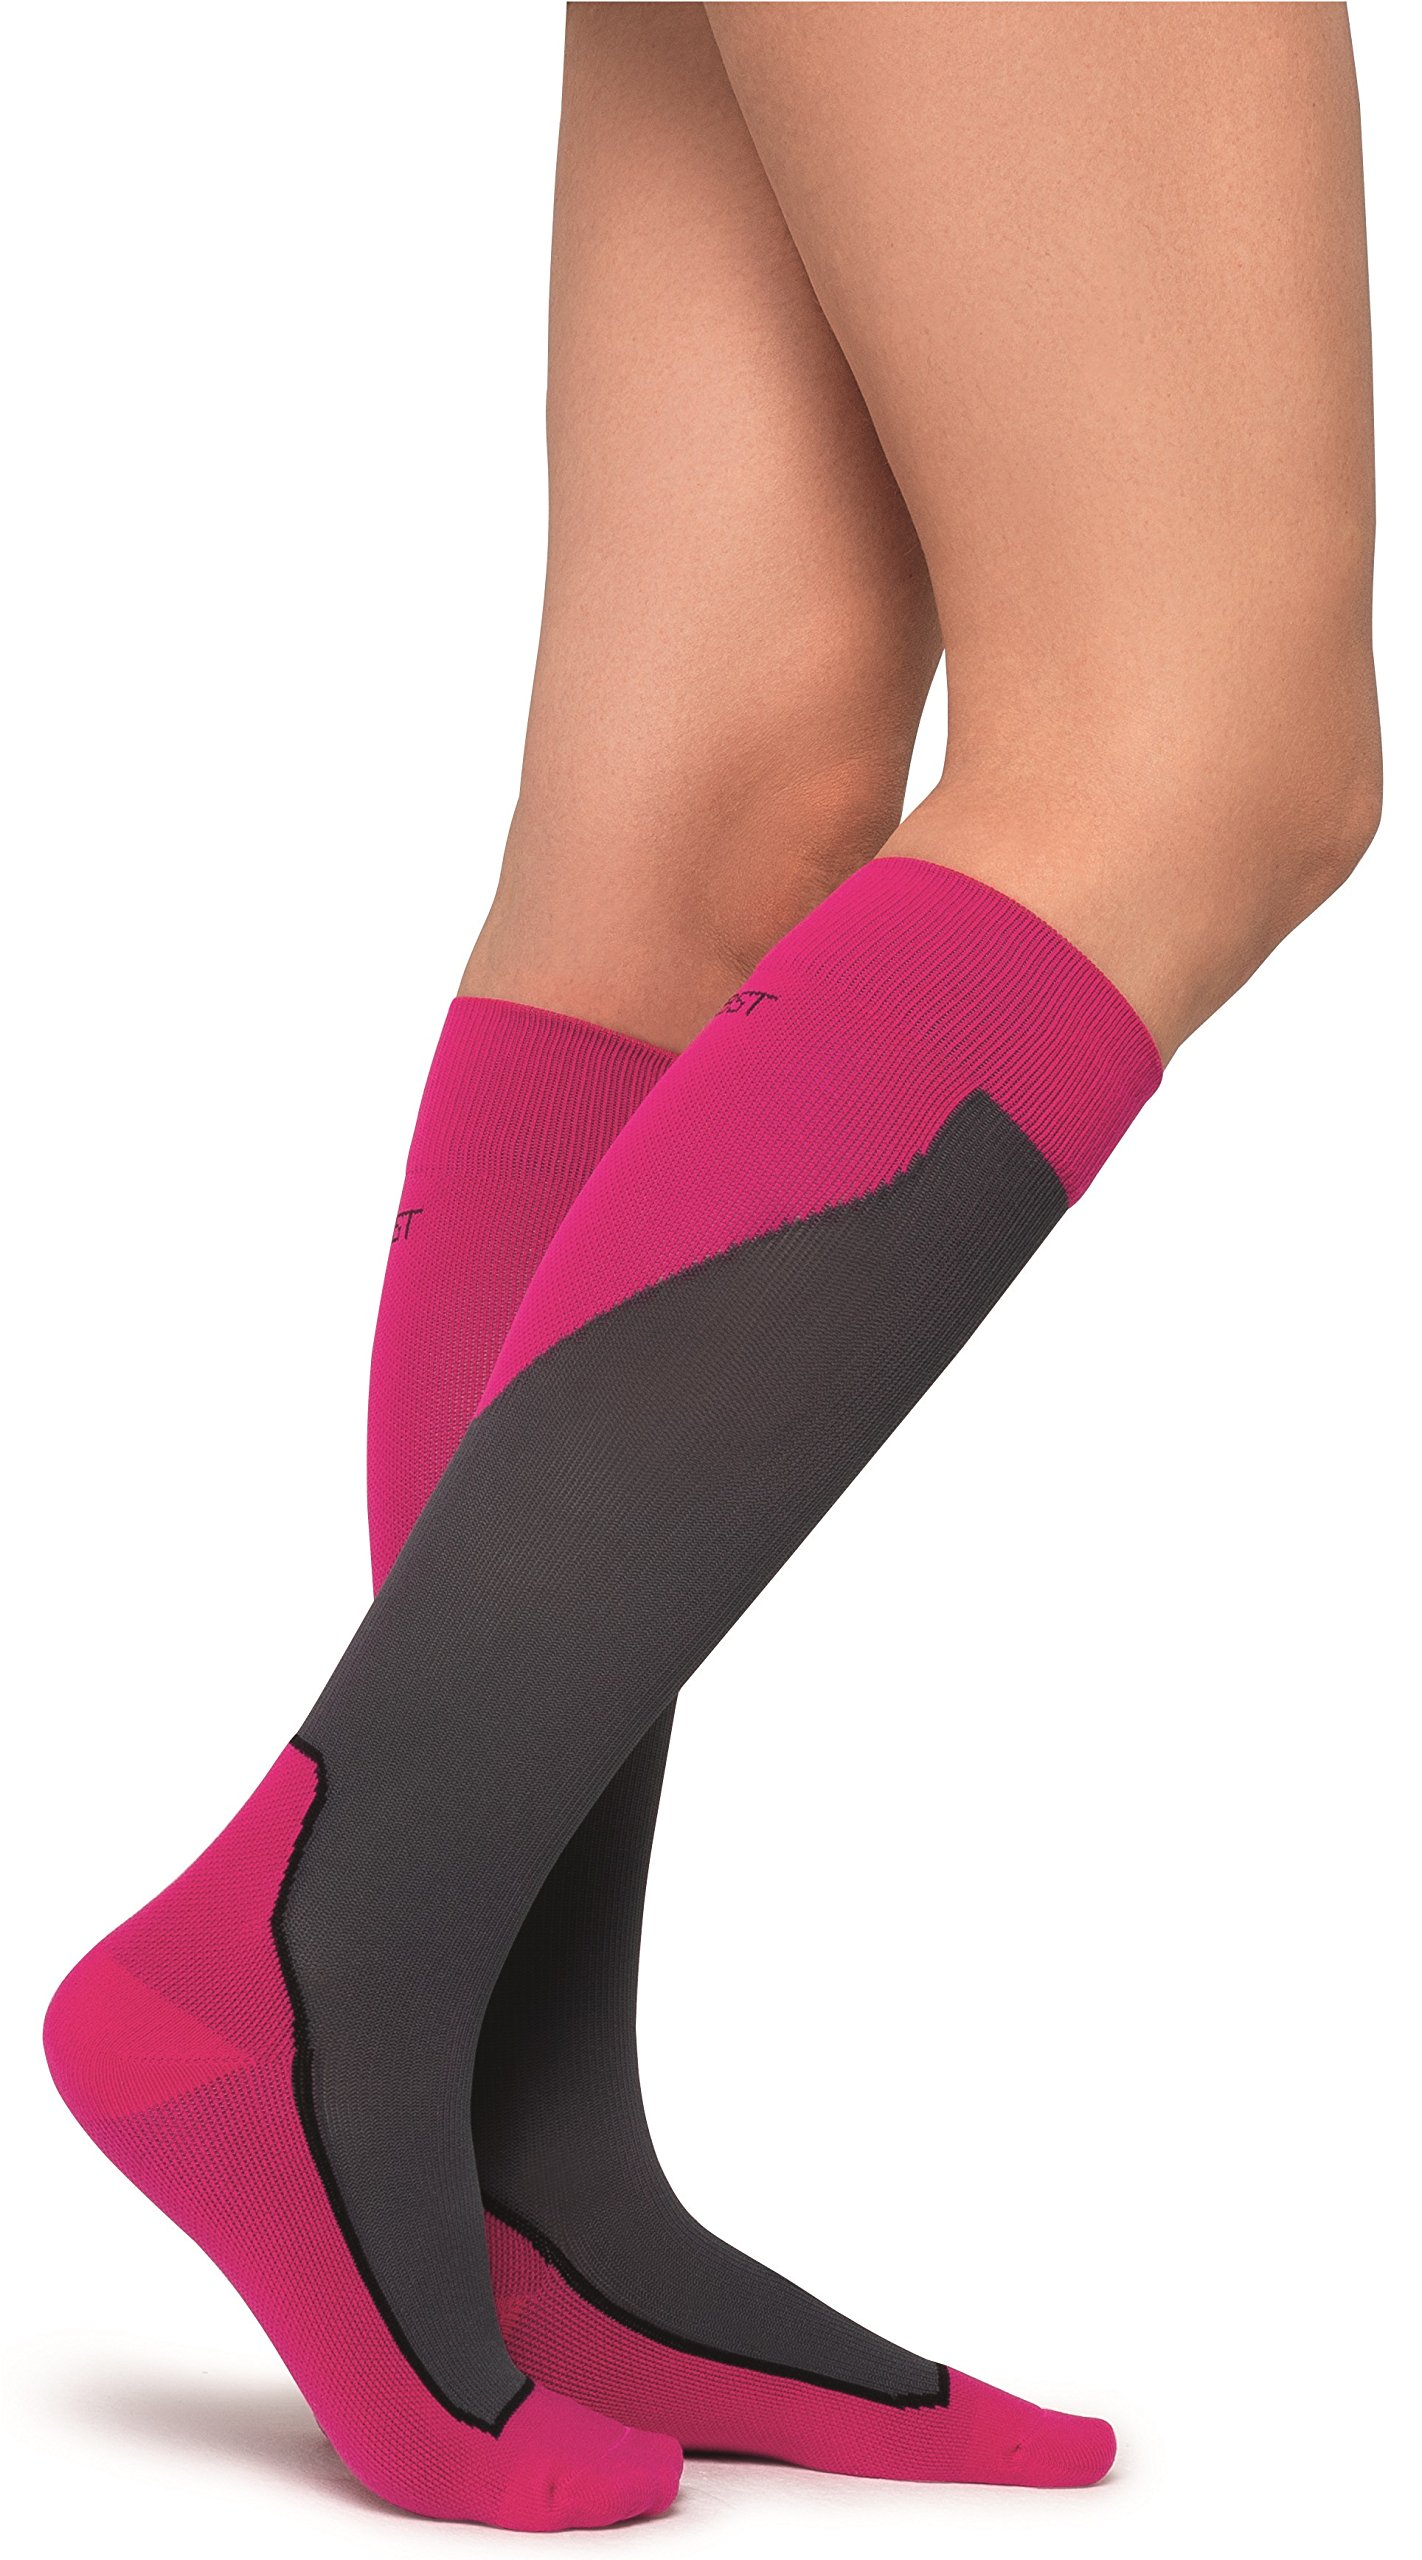 JOBST Sport Knee High 20-30 mmHg Compression Socks, Pink/Grey, Small